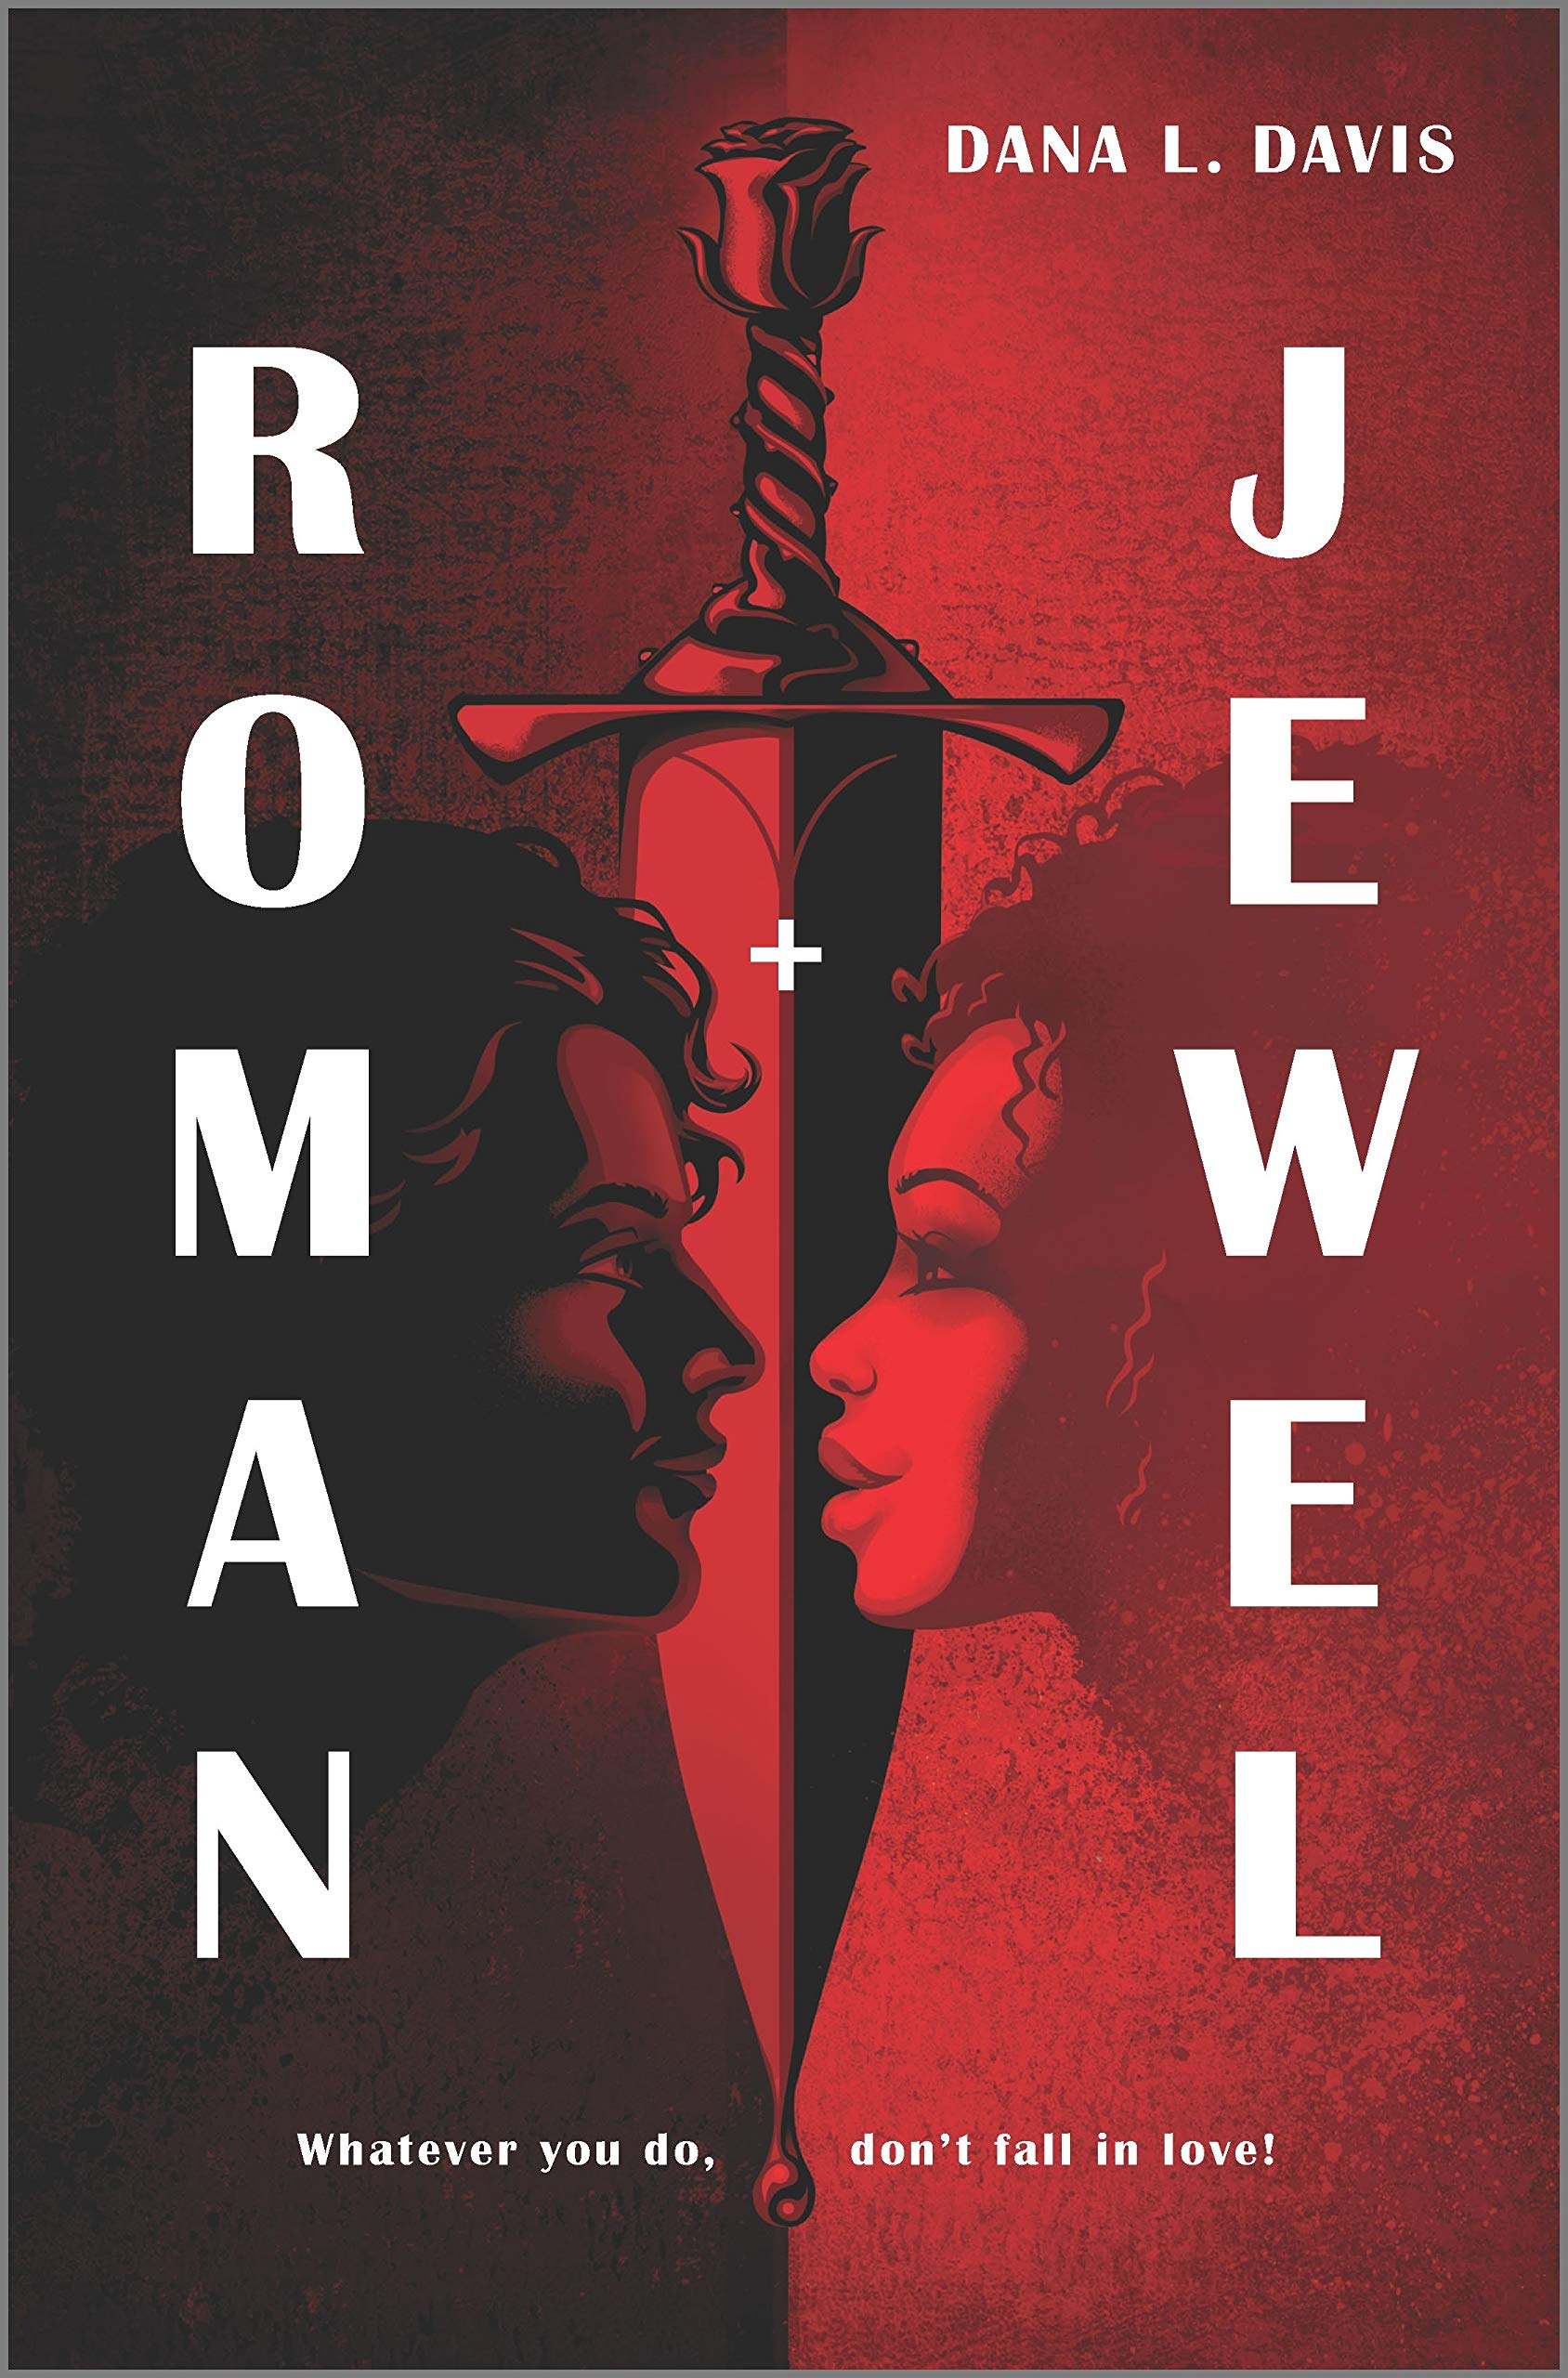 Amazon.com: Roman and Jewel (9781335070623): Davis, Dana L.: Books